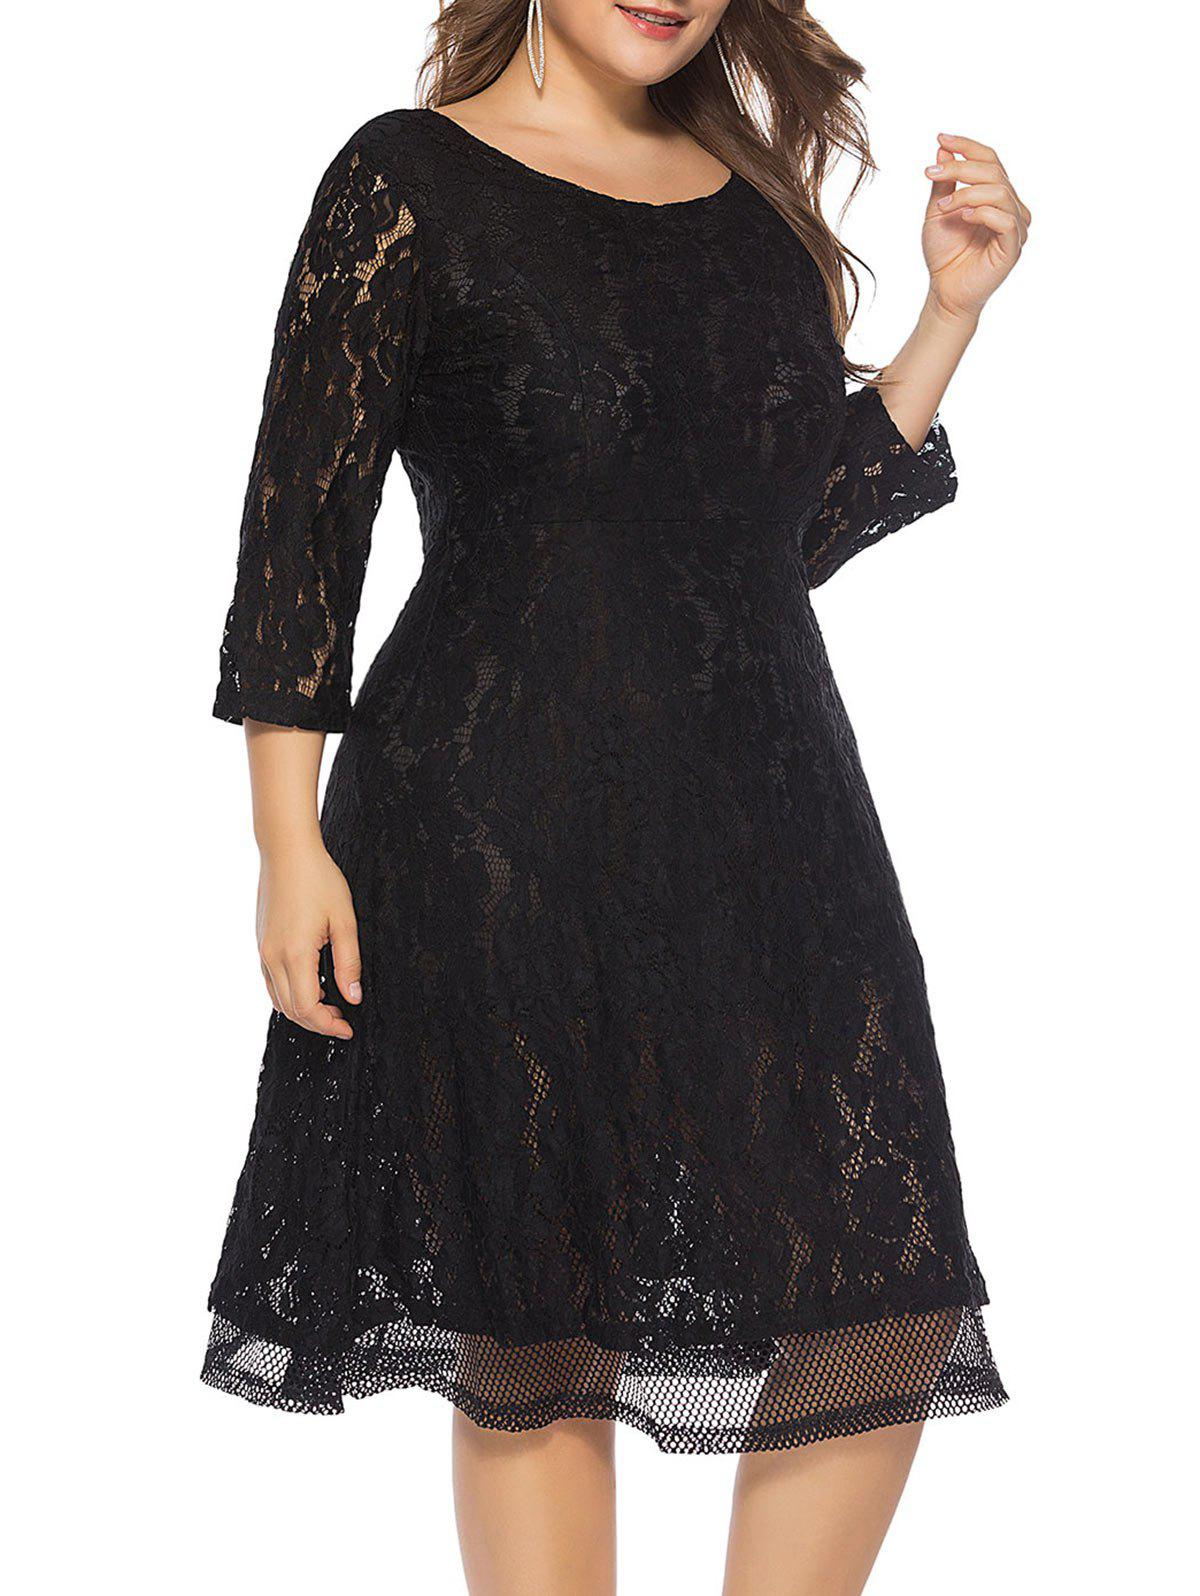 48% OFF] Plus Size Lace Knee Length Dress | Rosegal